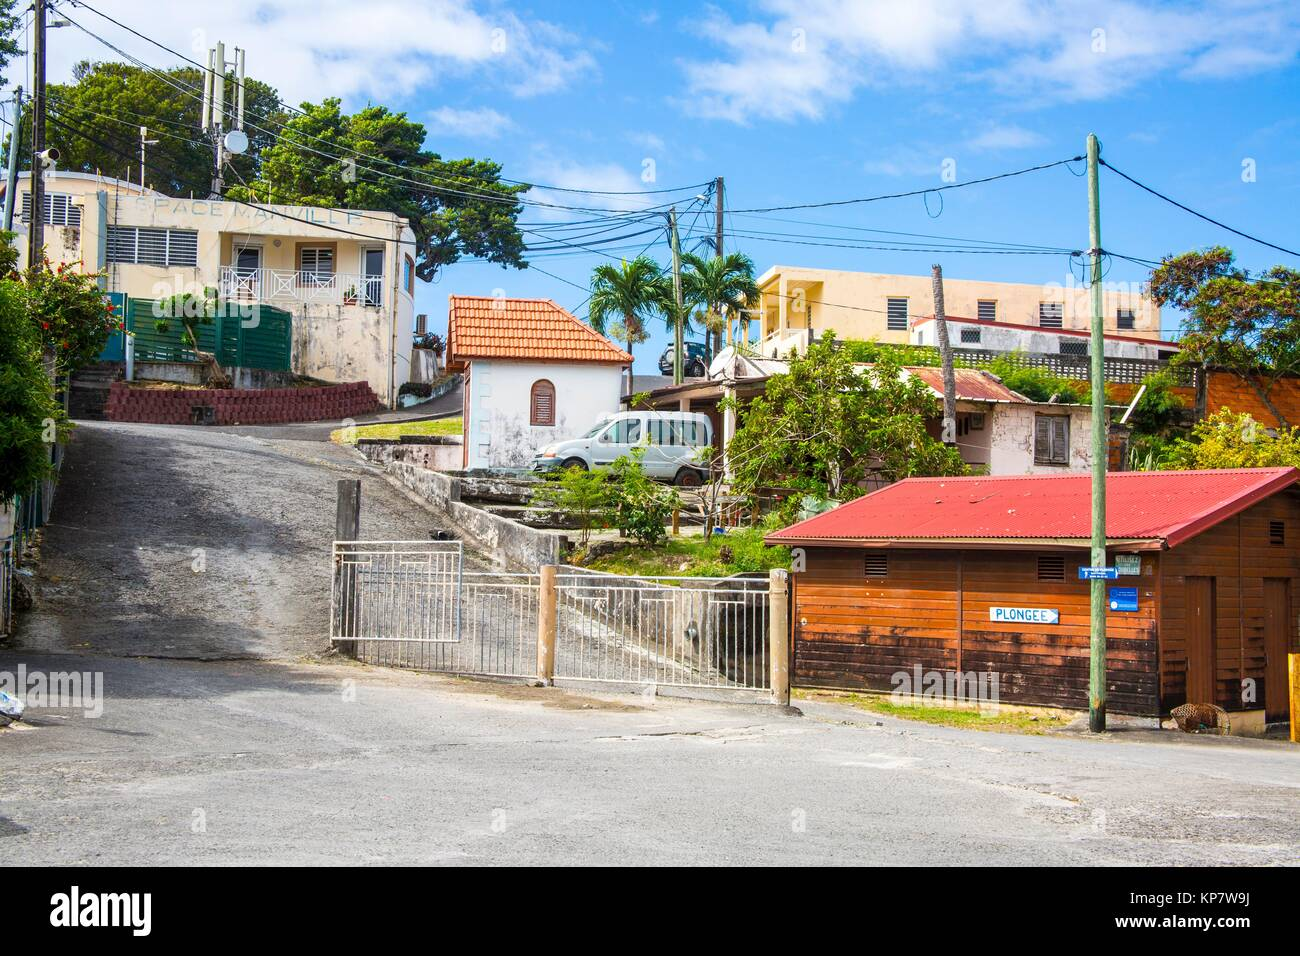 Beautiful house in the streets of Sainte Anne, village in the tropical island of Martinique. - Stock Image